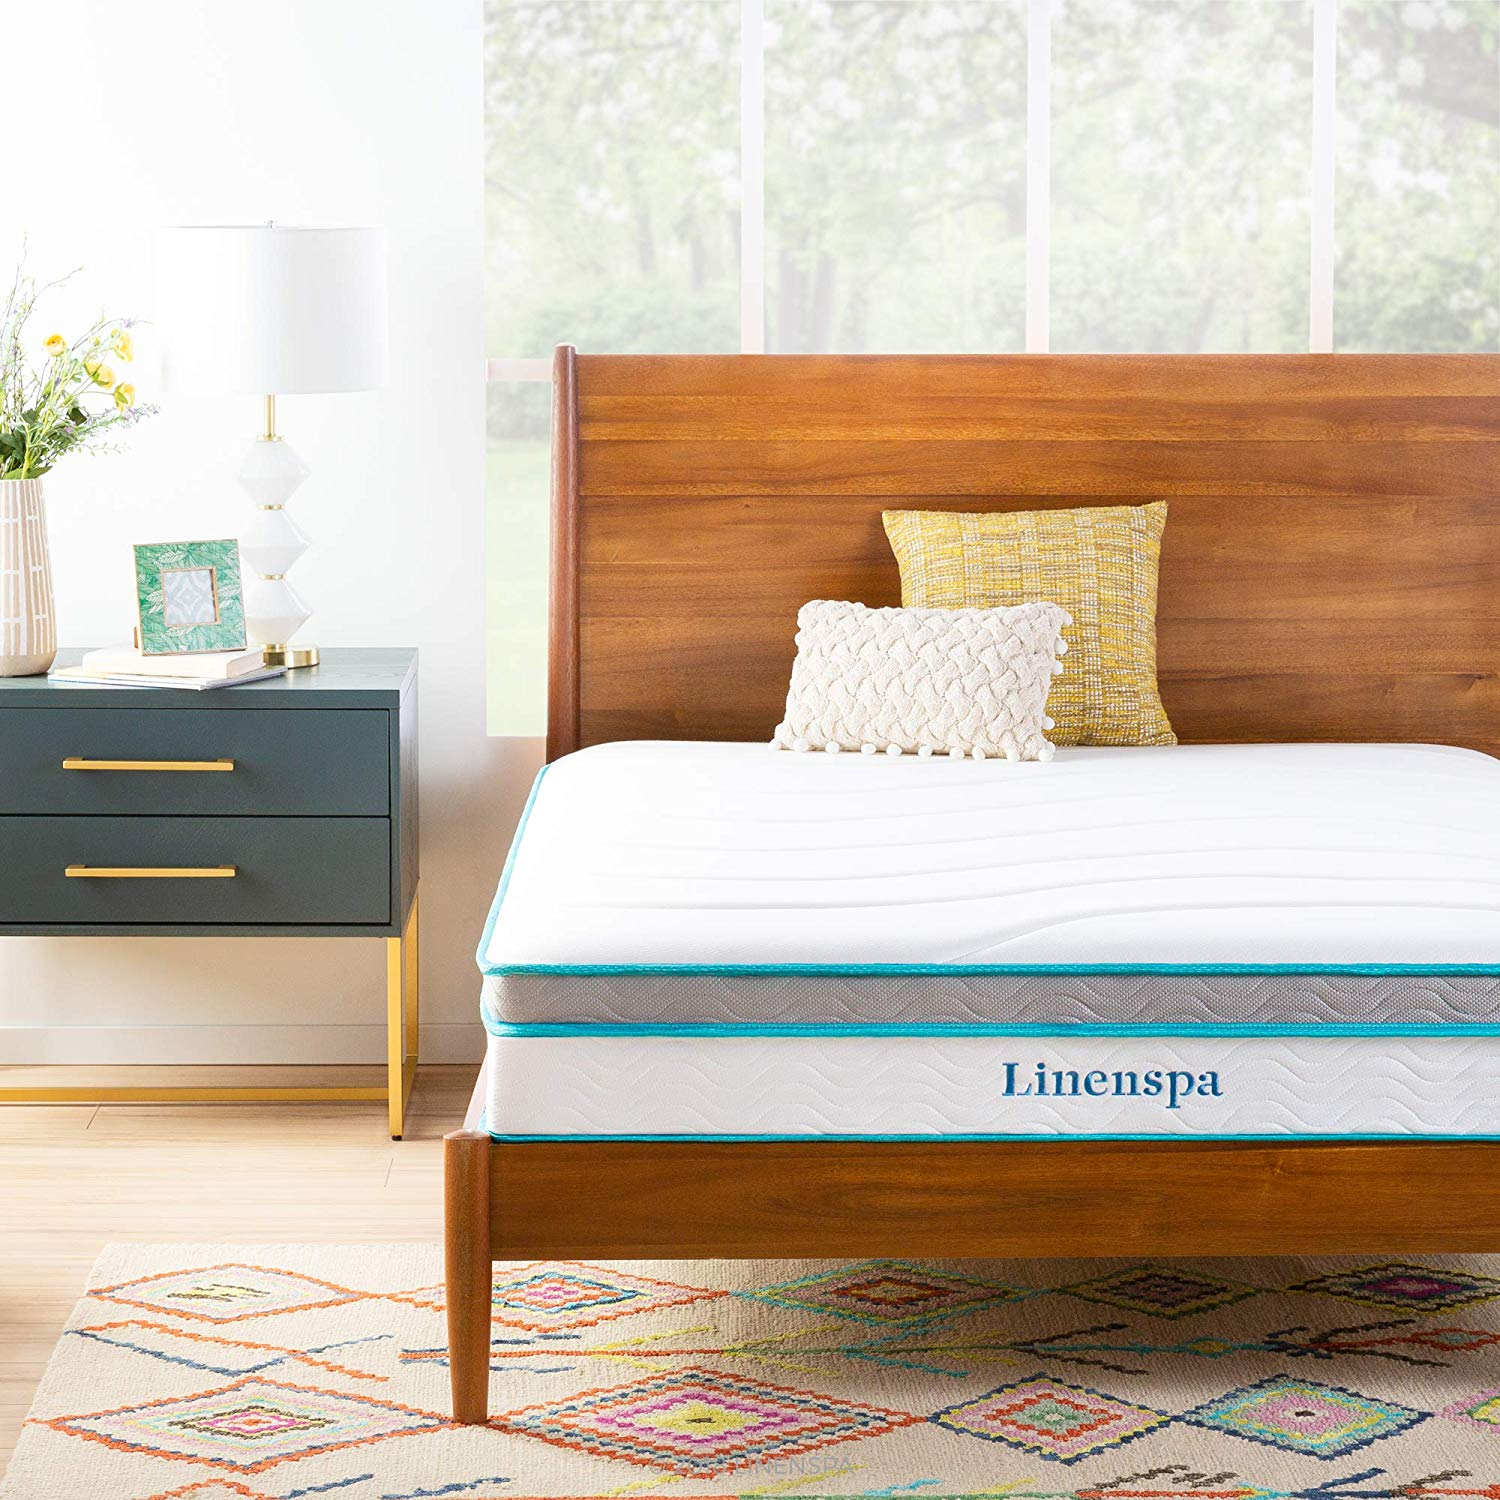 Linenspa Best Mattress in a Box Review by www.snoremagazine.com